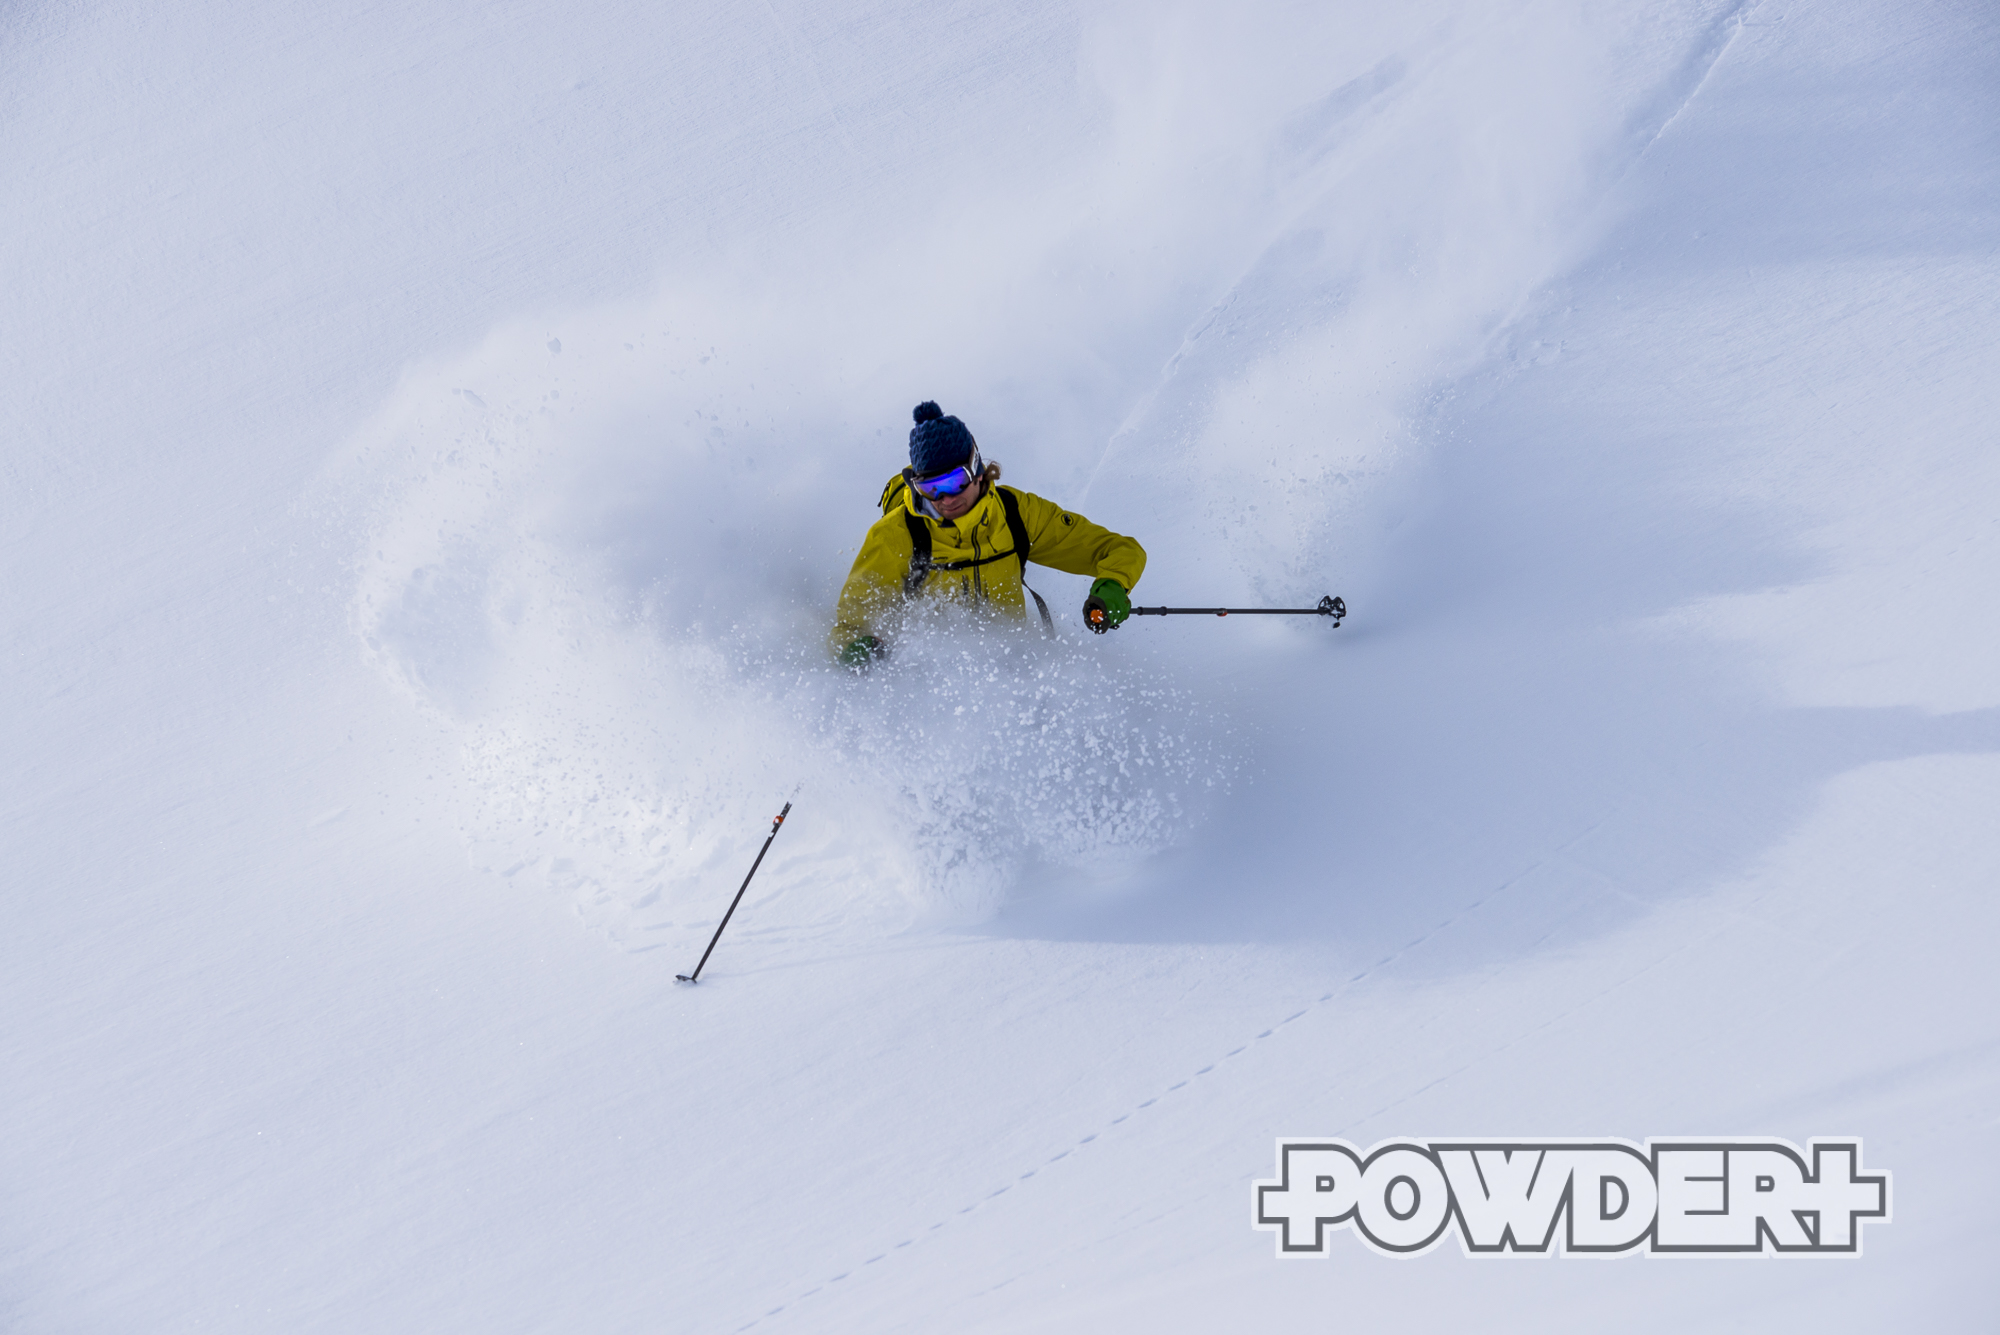 Silvretta Montafon, Powder, Freeride, Montafon, Hochjoch, Schruns, Snowboard, Novatal, POwder, Powderplus, Powder plus